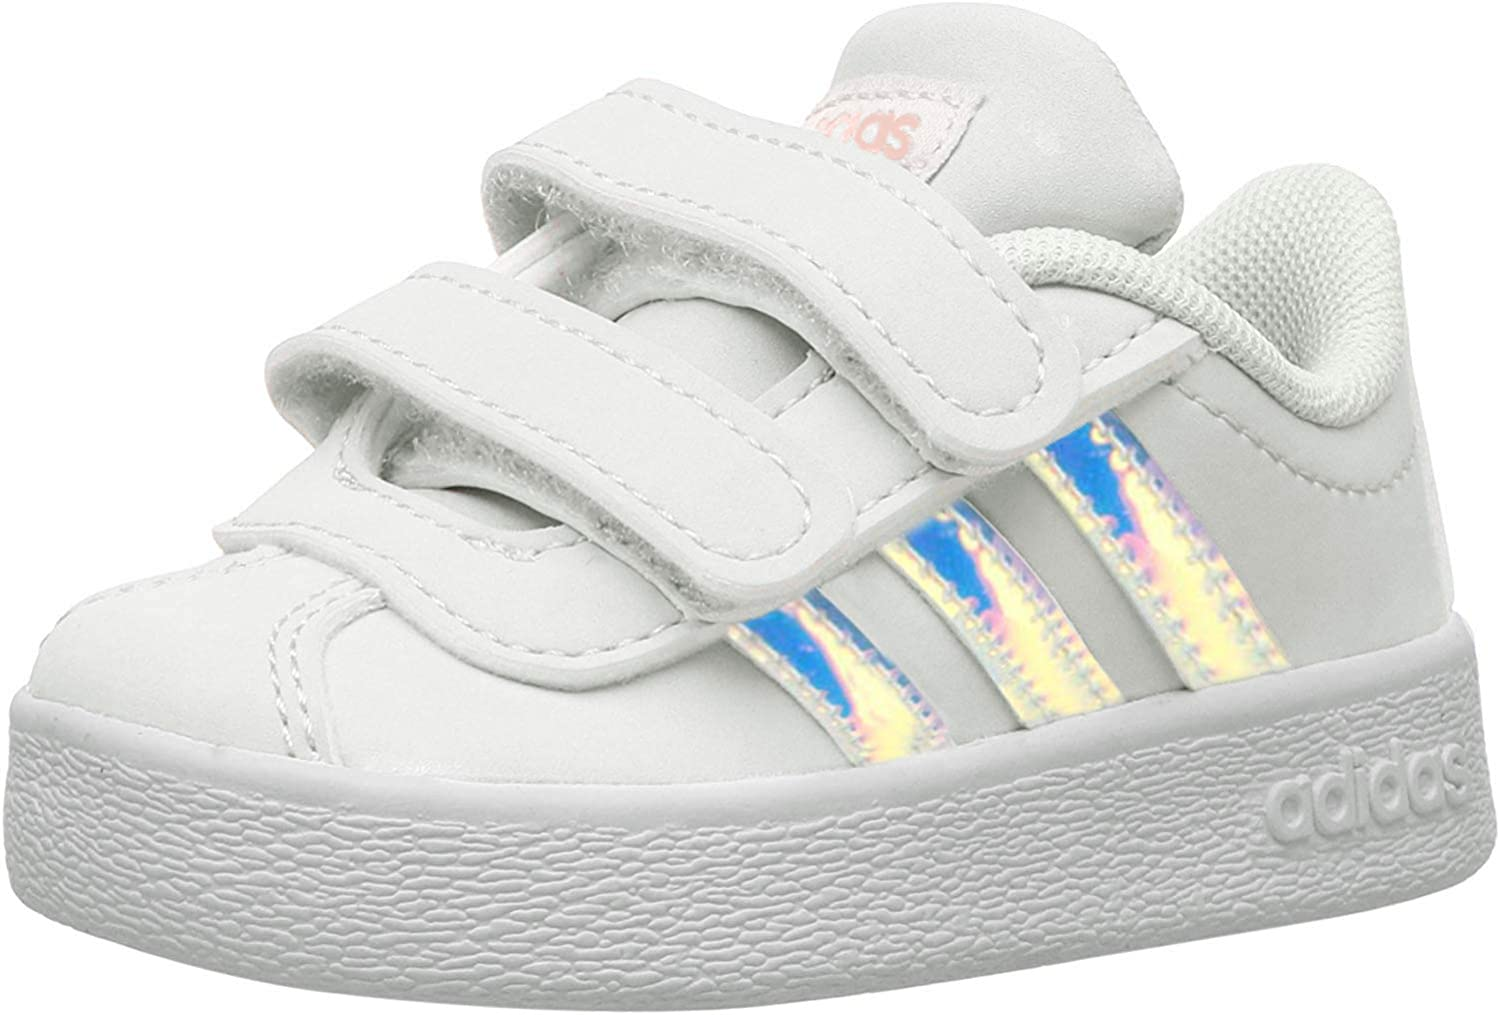 Hornear Tanga estrecha Palacio  Amazon.com: adidas Vl Court 2.0 Infant White/C Blue Infant Shoes: Clothing